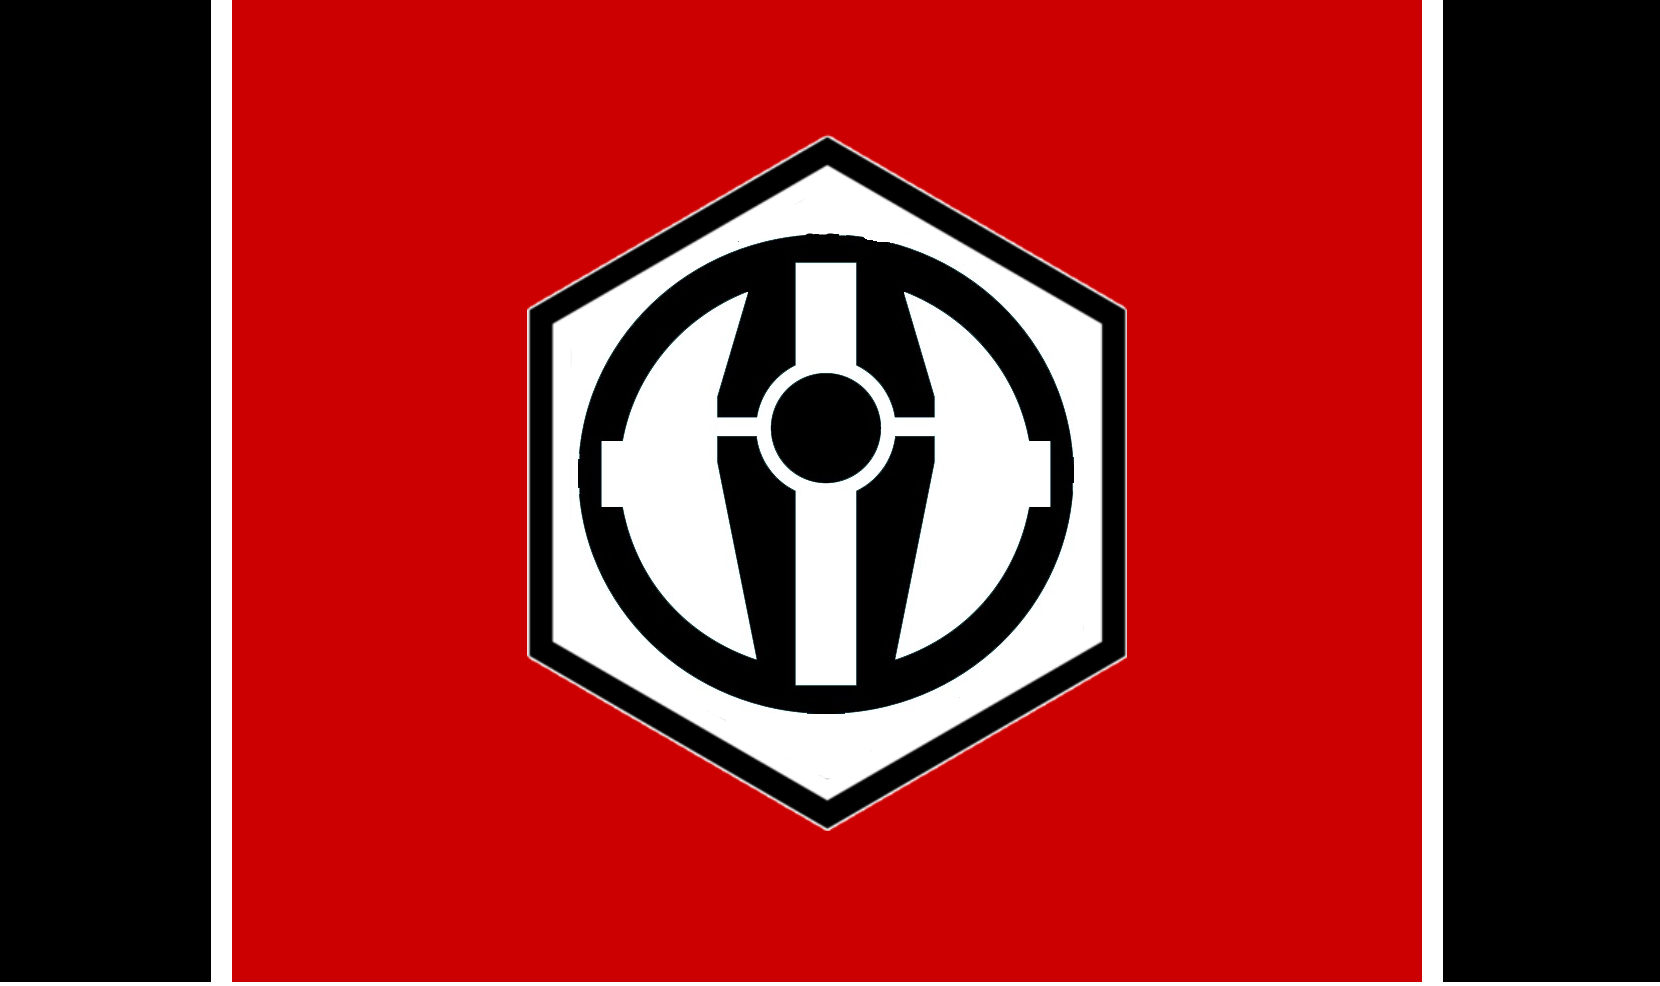 Neo Sith Flag By 117jorn On Deviantart